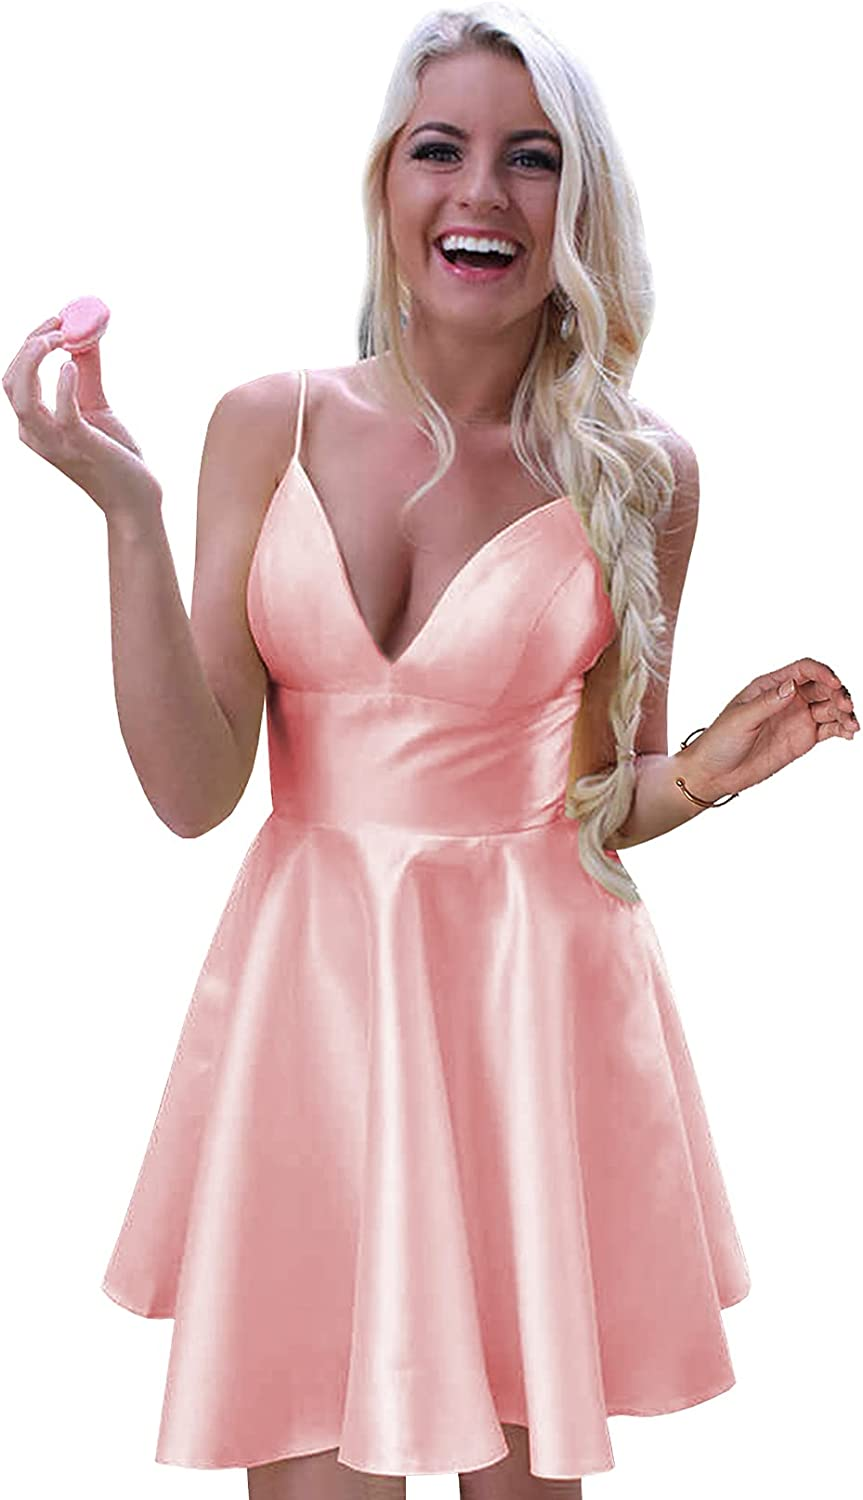 BONOYUER Spaghetti Strap Short Homecoming Dresses for Teens A Line V Neck Empire Satin Cocktail Prom Party Gown with Pockets